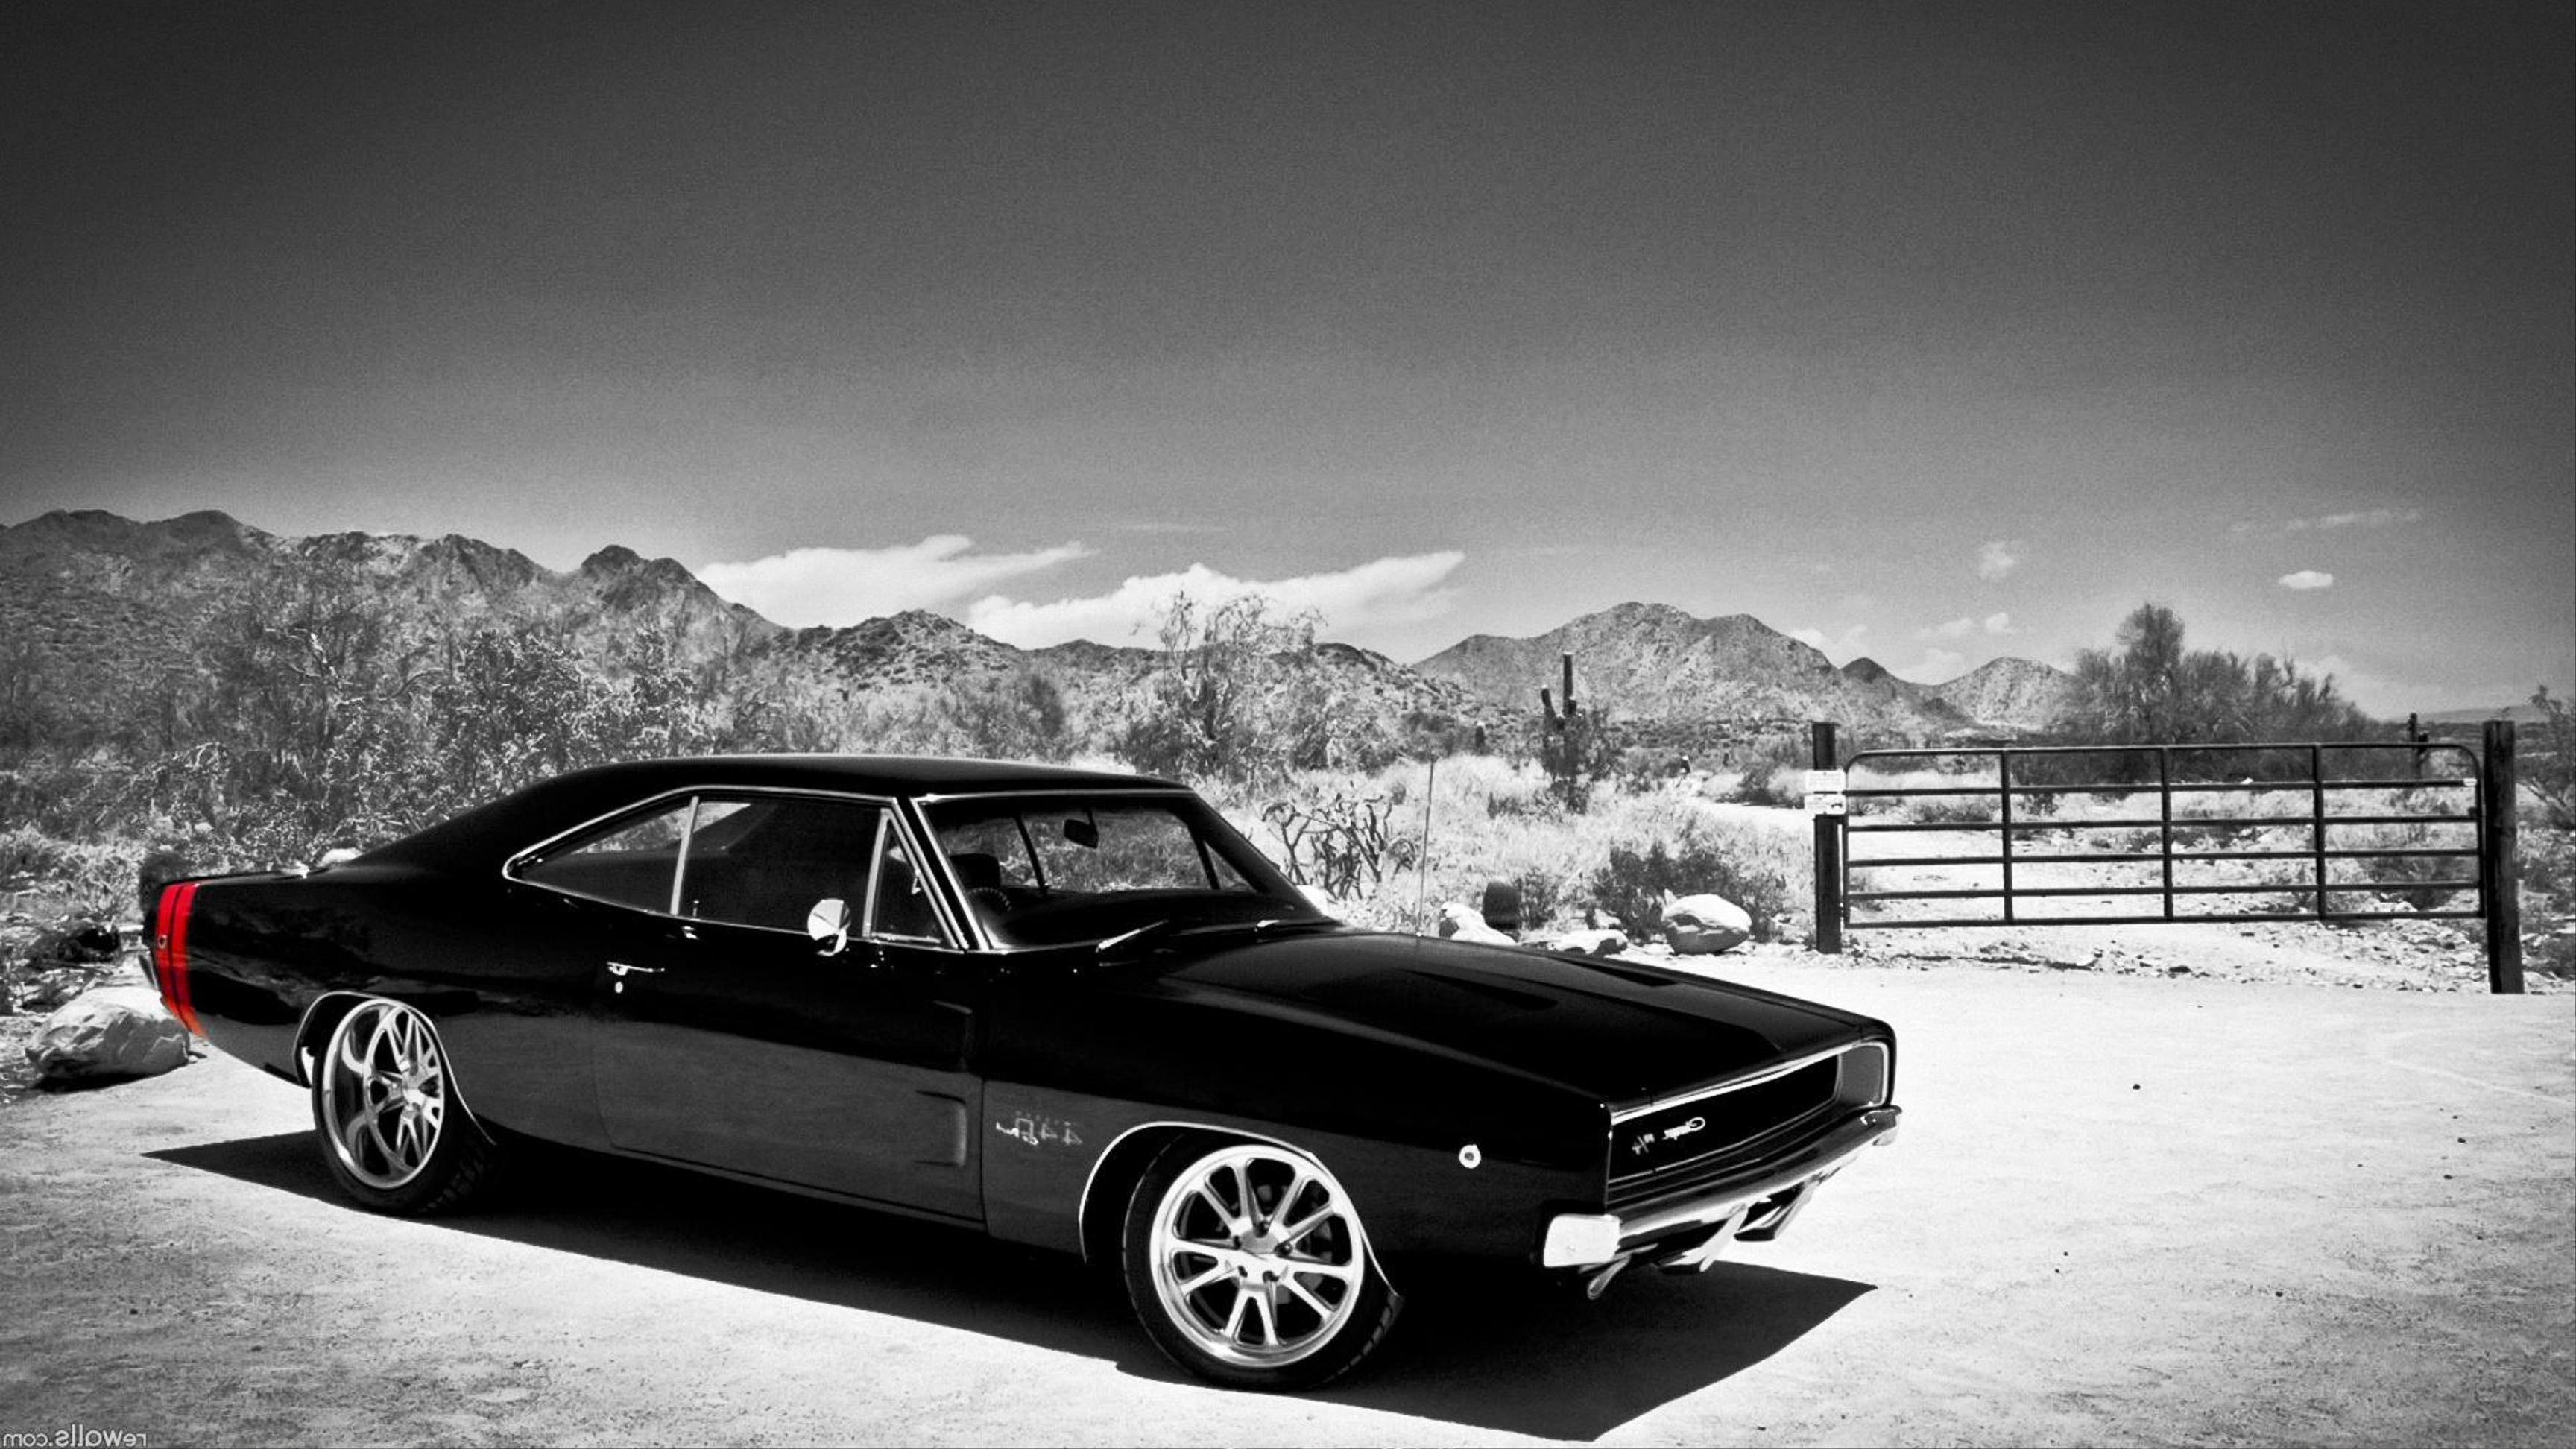 dodge charger wallpaper hd dodge charger wallpaper black dodge charger 3456x1944